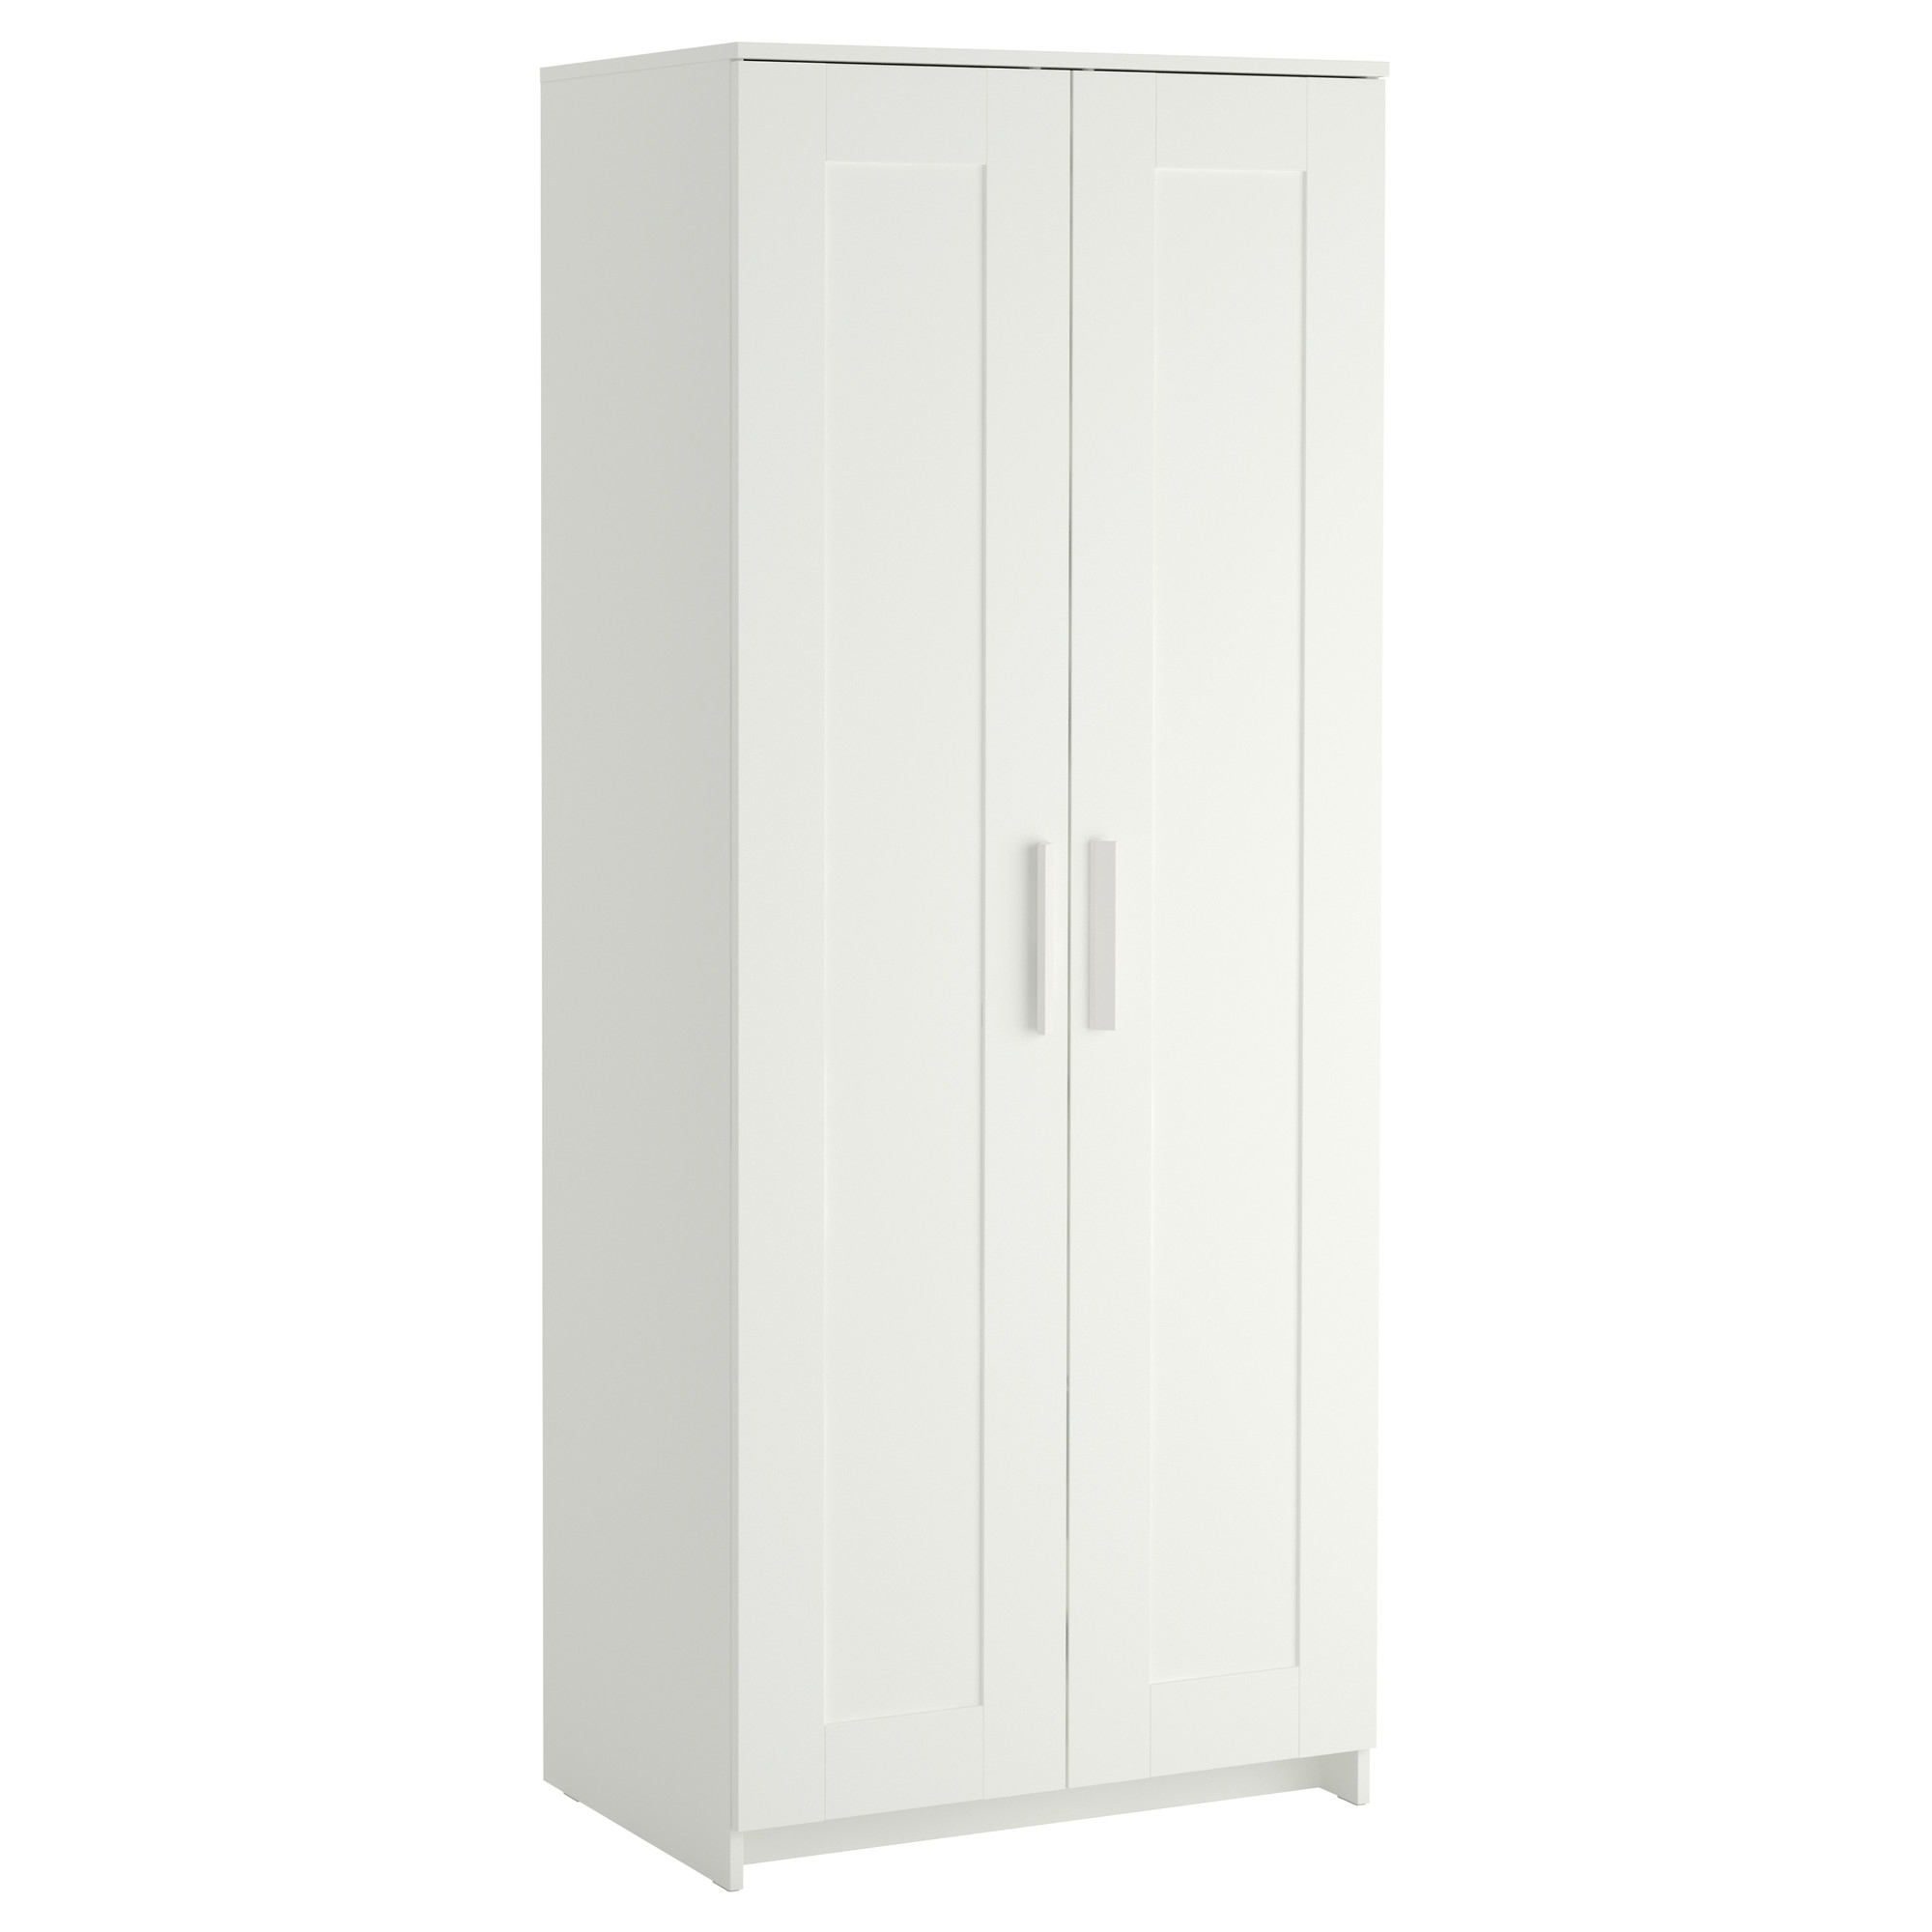 Favorite Small Wardrobes Intended For Brimnes Wardrobe With 2 Doors White 78X190 Cm – Ikea (View 9 of 15)